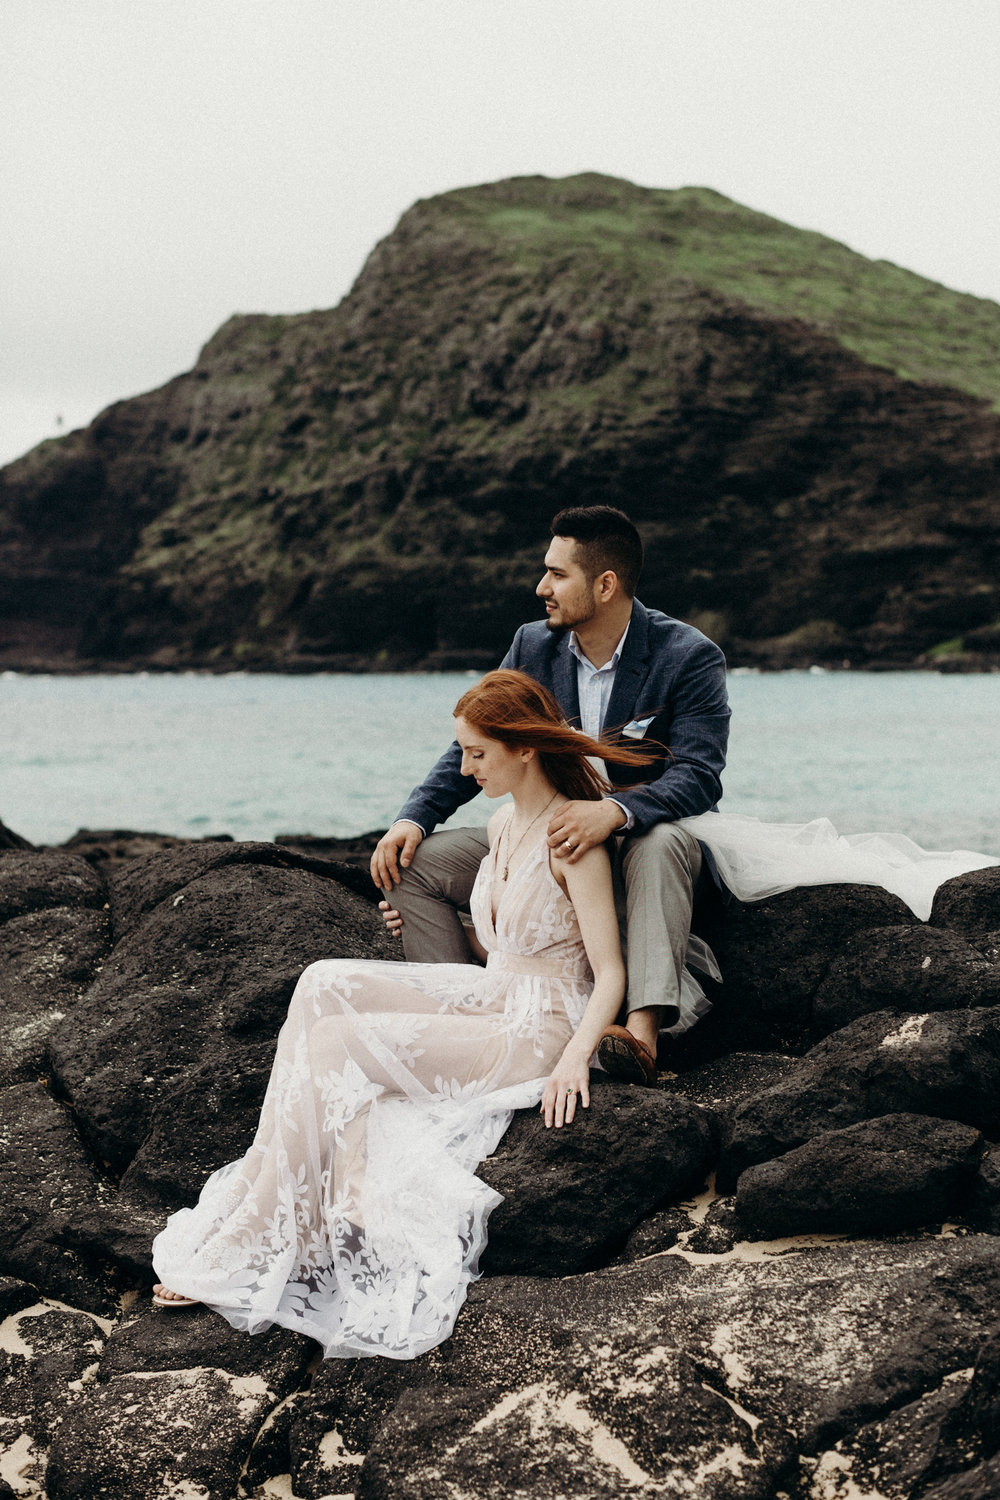 hawaii-wedding-photographer-keani-bakula-44.jpg